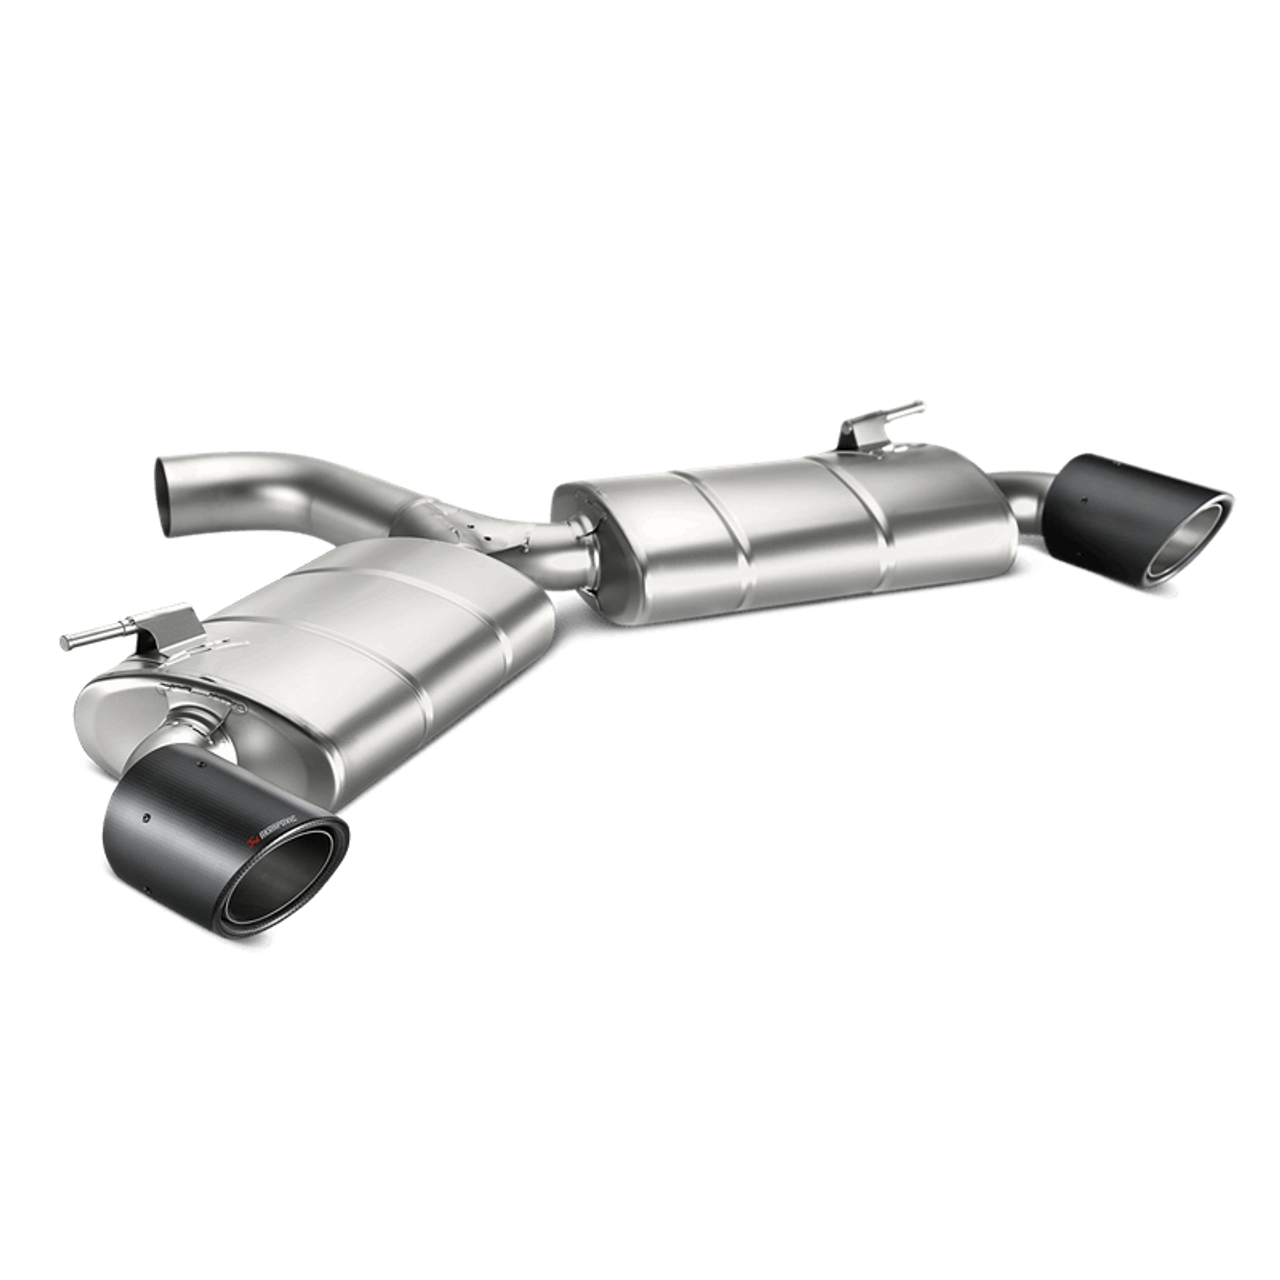 Akrapovic Slip On Line Titanium Exhaust System Vw Golf Mk7 Gti Ecotune Performance Without Compromise